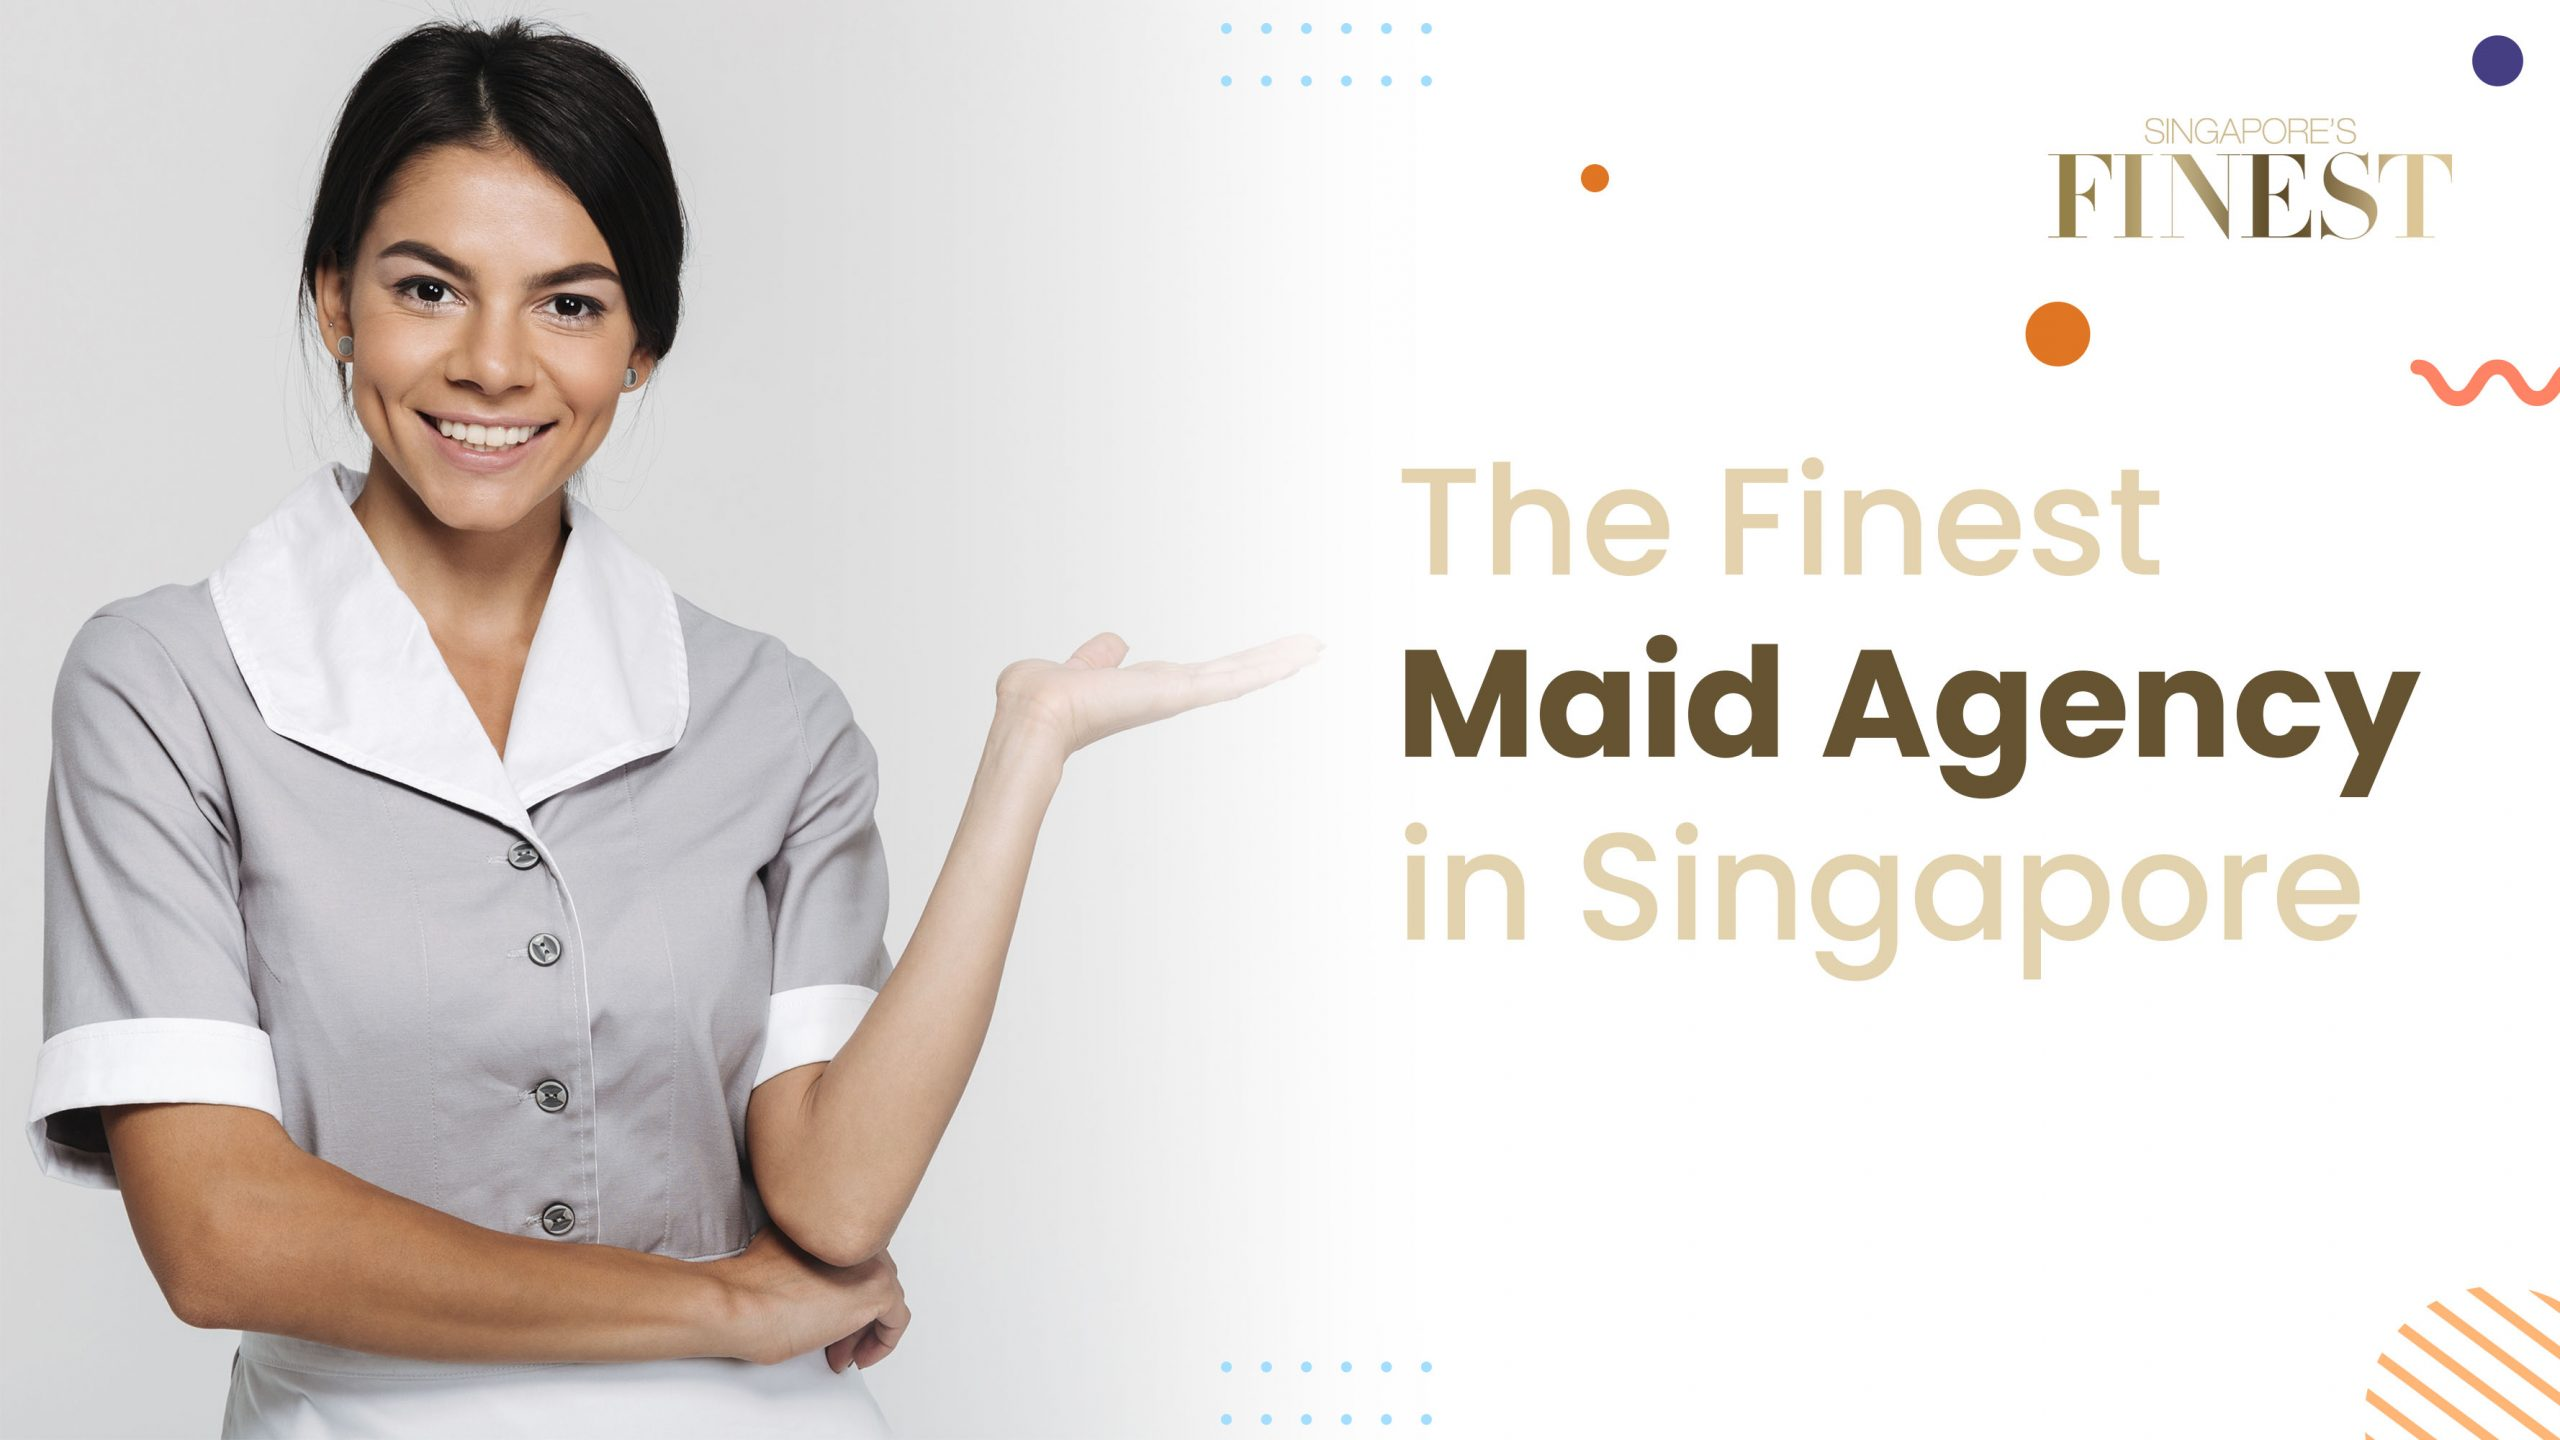 Maid agency in Singapore